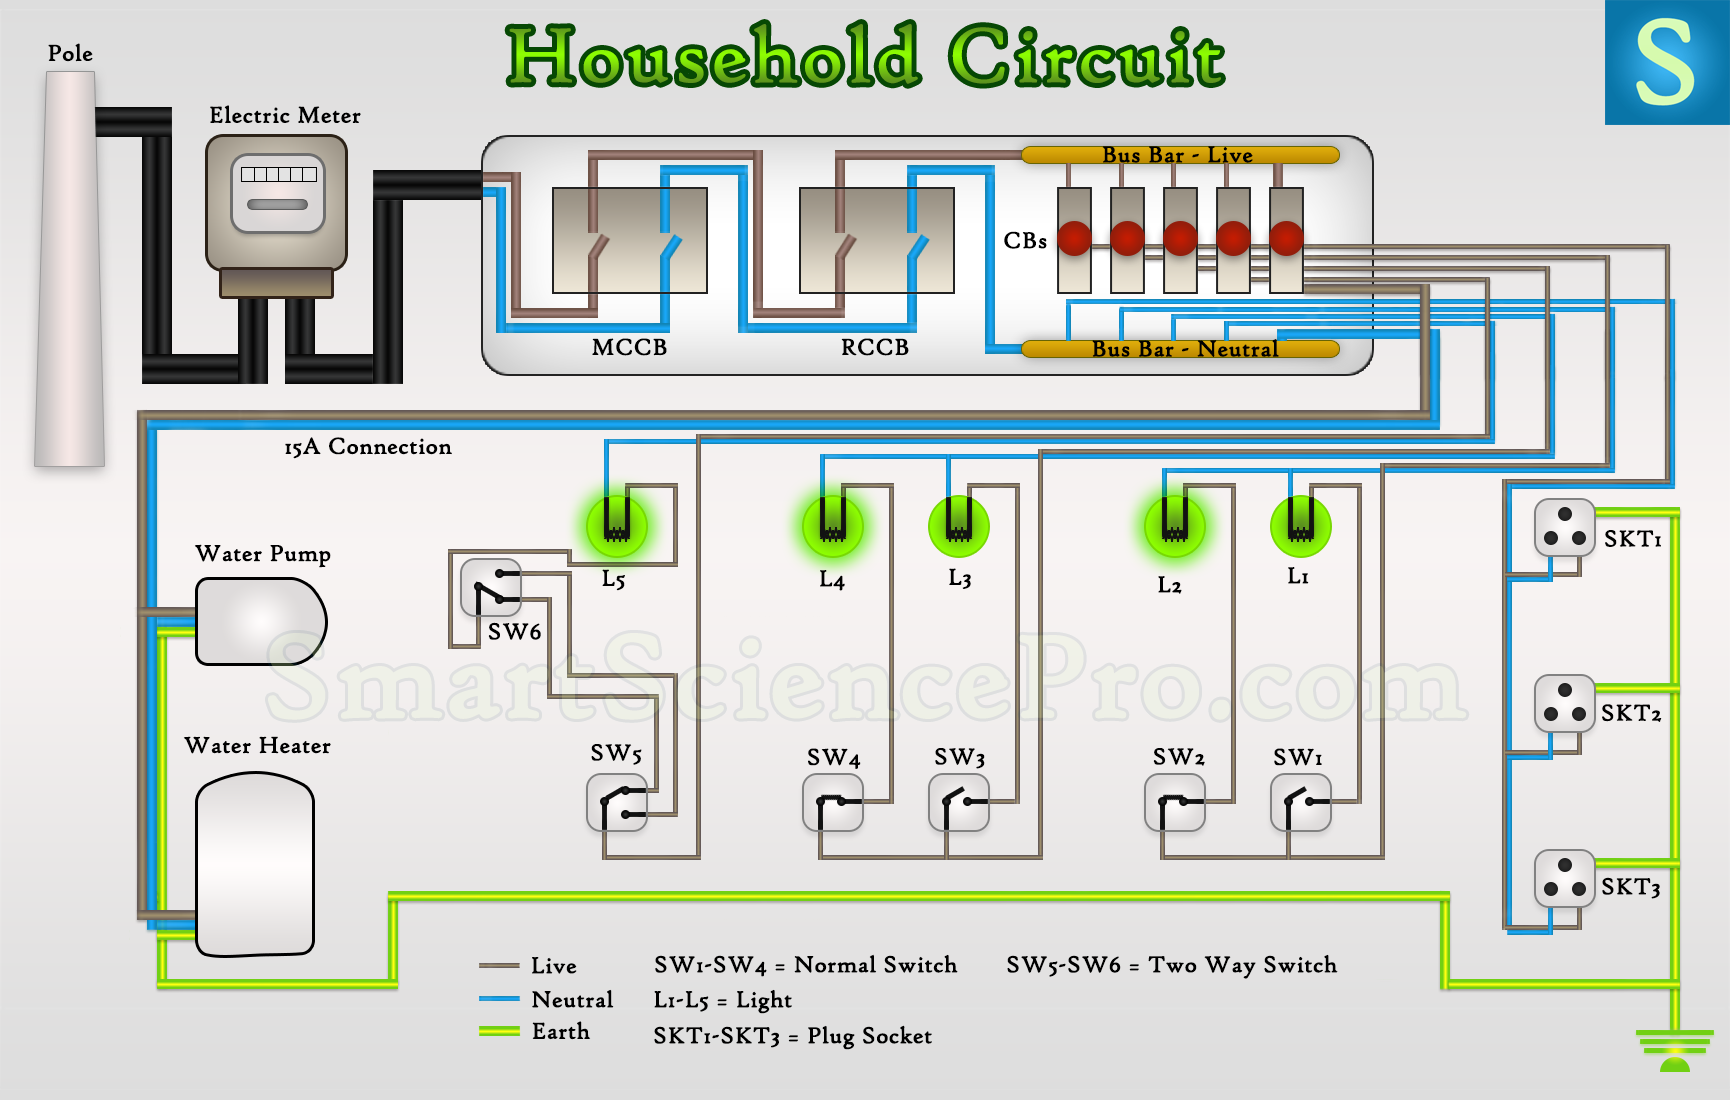 Wiring Diagram For Electric Meter Lamps - Wiring Diagram Online on house electrical codes, earthing system, power cable, mains electricity by country, electrical wiring in north america, three-phase electric power, ground and neutral, ac power plugs and sockets, house electrical parts, home wiring, house schematic diagram, lighting electrical diagrams, house wiring light switch, house wiring 101, house electrical installation, house plumbing diagrams, national electrical code, house electrical circuit diagram, light switch, house electrical single line diagram, house wiring codes, house wiring colors, electrical connections diagrams, ring circuit, circuit breaker, house wiring diagram examples, electrical conduit, electrical system design, sample electrical diagrams, house wire diagrams, junction box, knob and tube wiring, pull station diagrams, house electrical schematics, house electrical blueprints, distribution board, automotive electrical diagrams, circuit diagram,